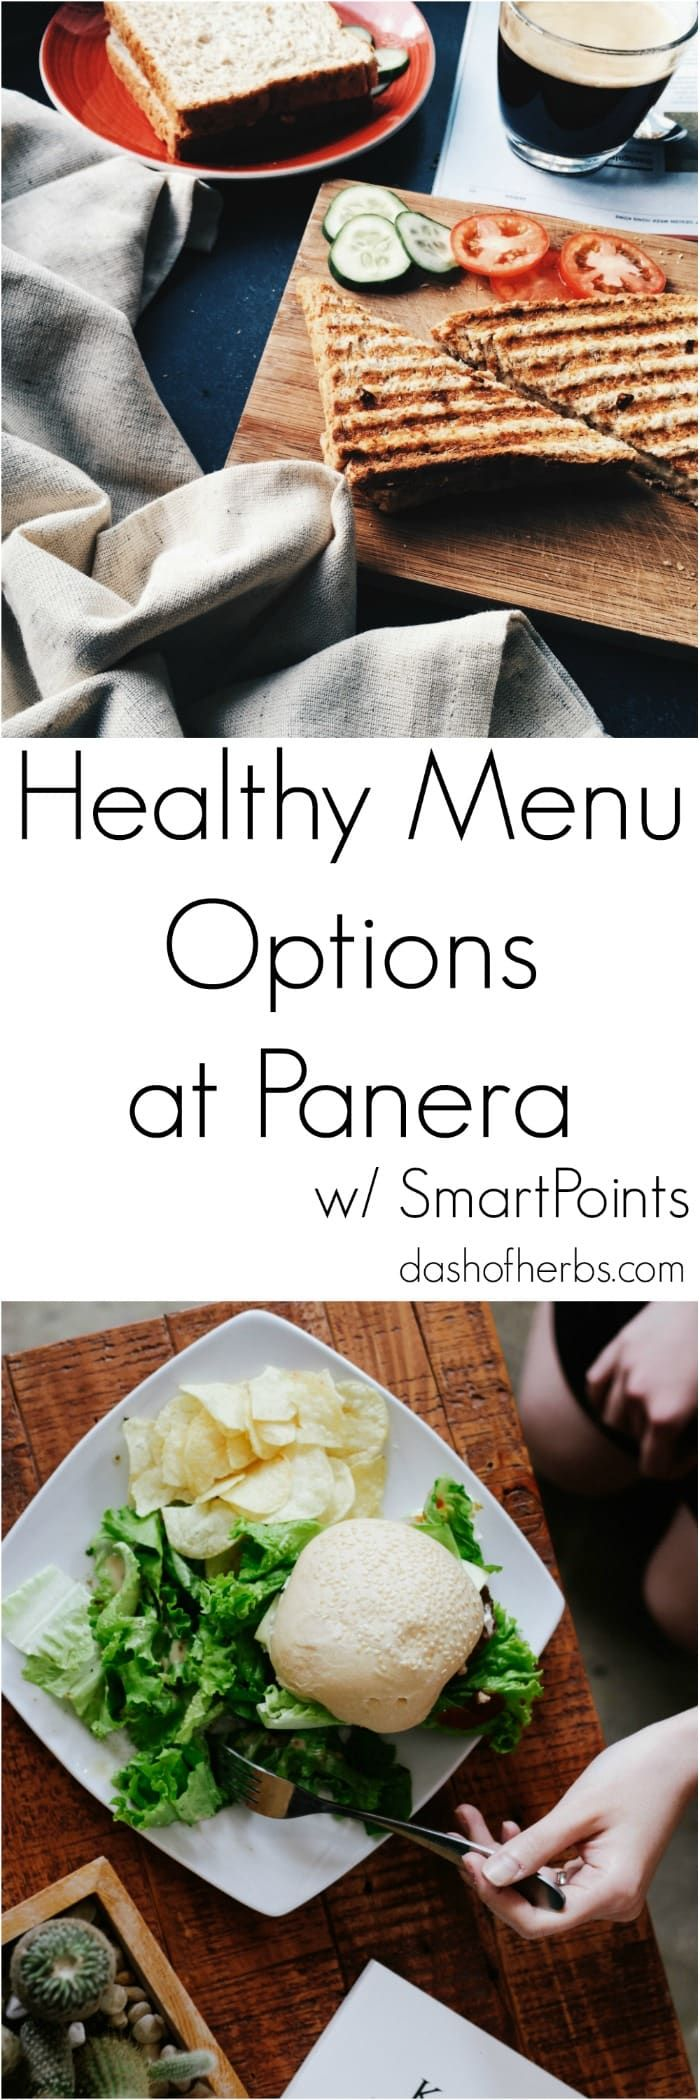 If you hate standing in line at Panera Bread wondering what to order that will be within your Weight Watchers SmartPoints, look no further.  This guide gives you the healthy menu options at Panera Bread with the SmartPoints included for each item so that you can easily decide what you want to eat.